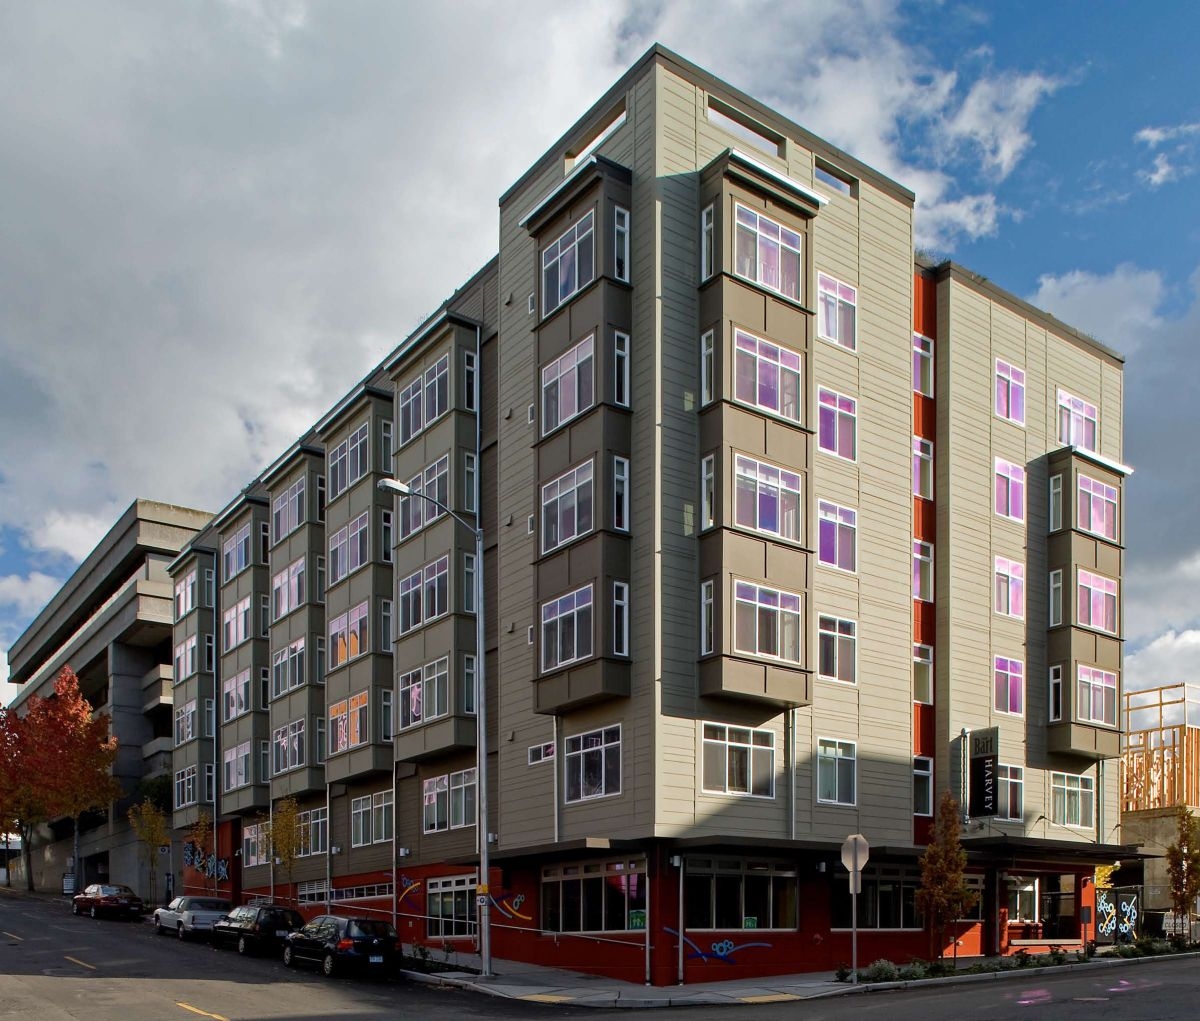 Cheap Apartments Near Journal Square: Bart Harvey 430 Minor Ave N Seattle, WA 98109 Independent